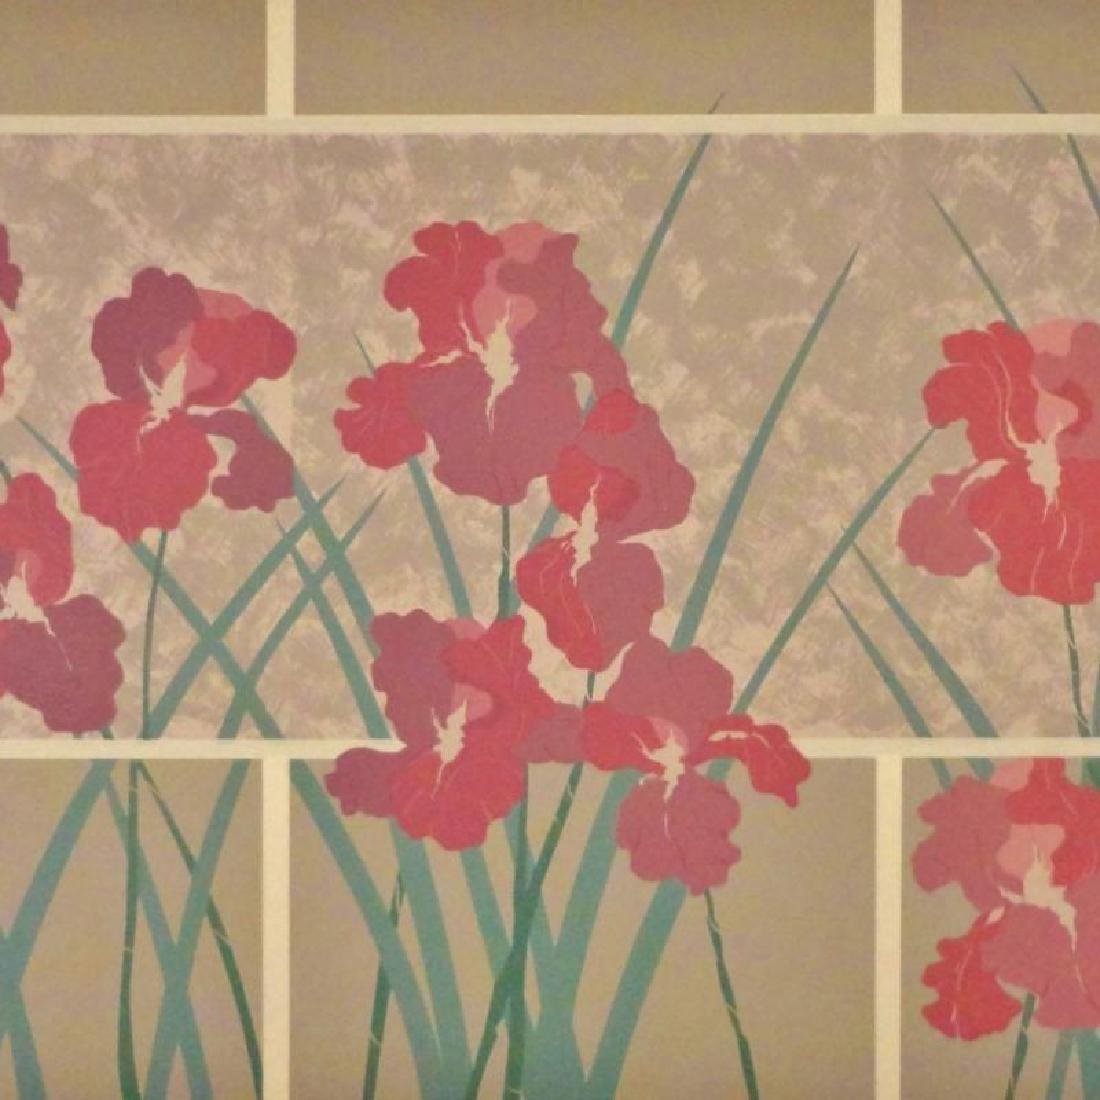 Floral Limited Edition Signed Art Only $30 Large 26X40 - 3